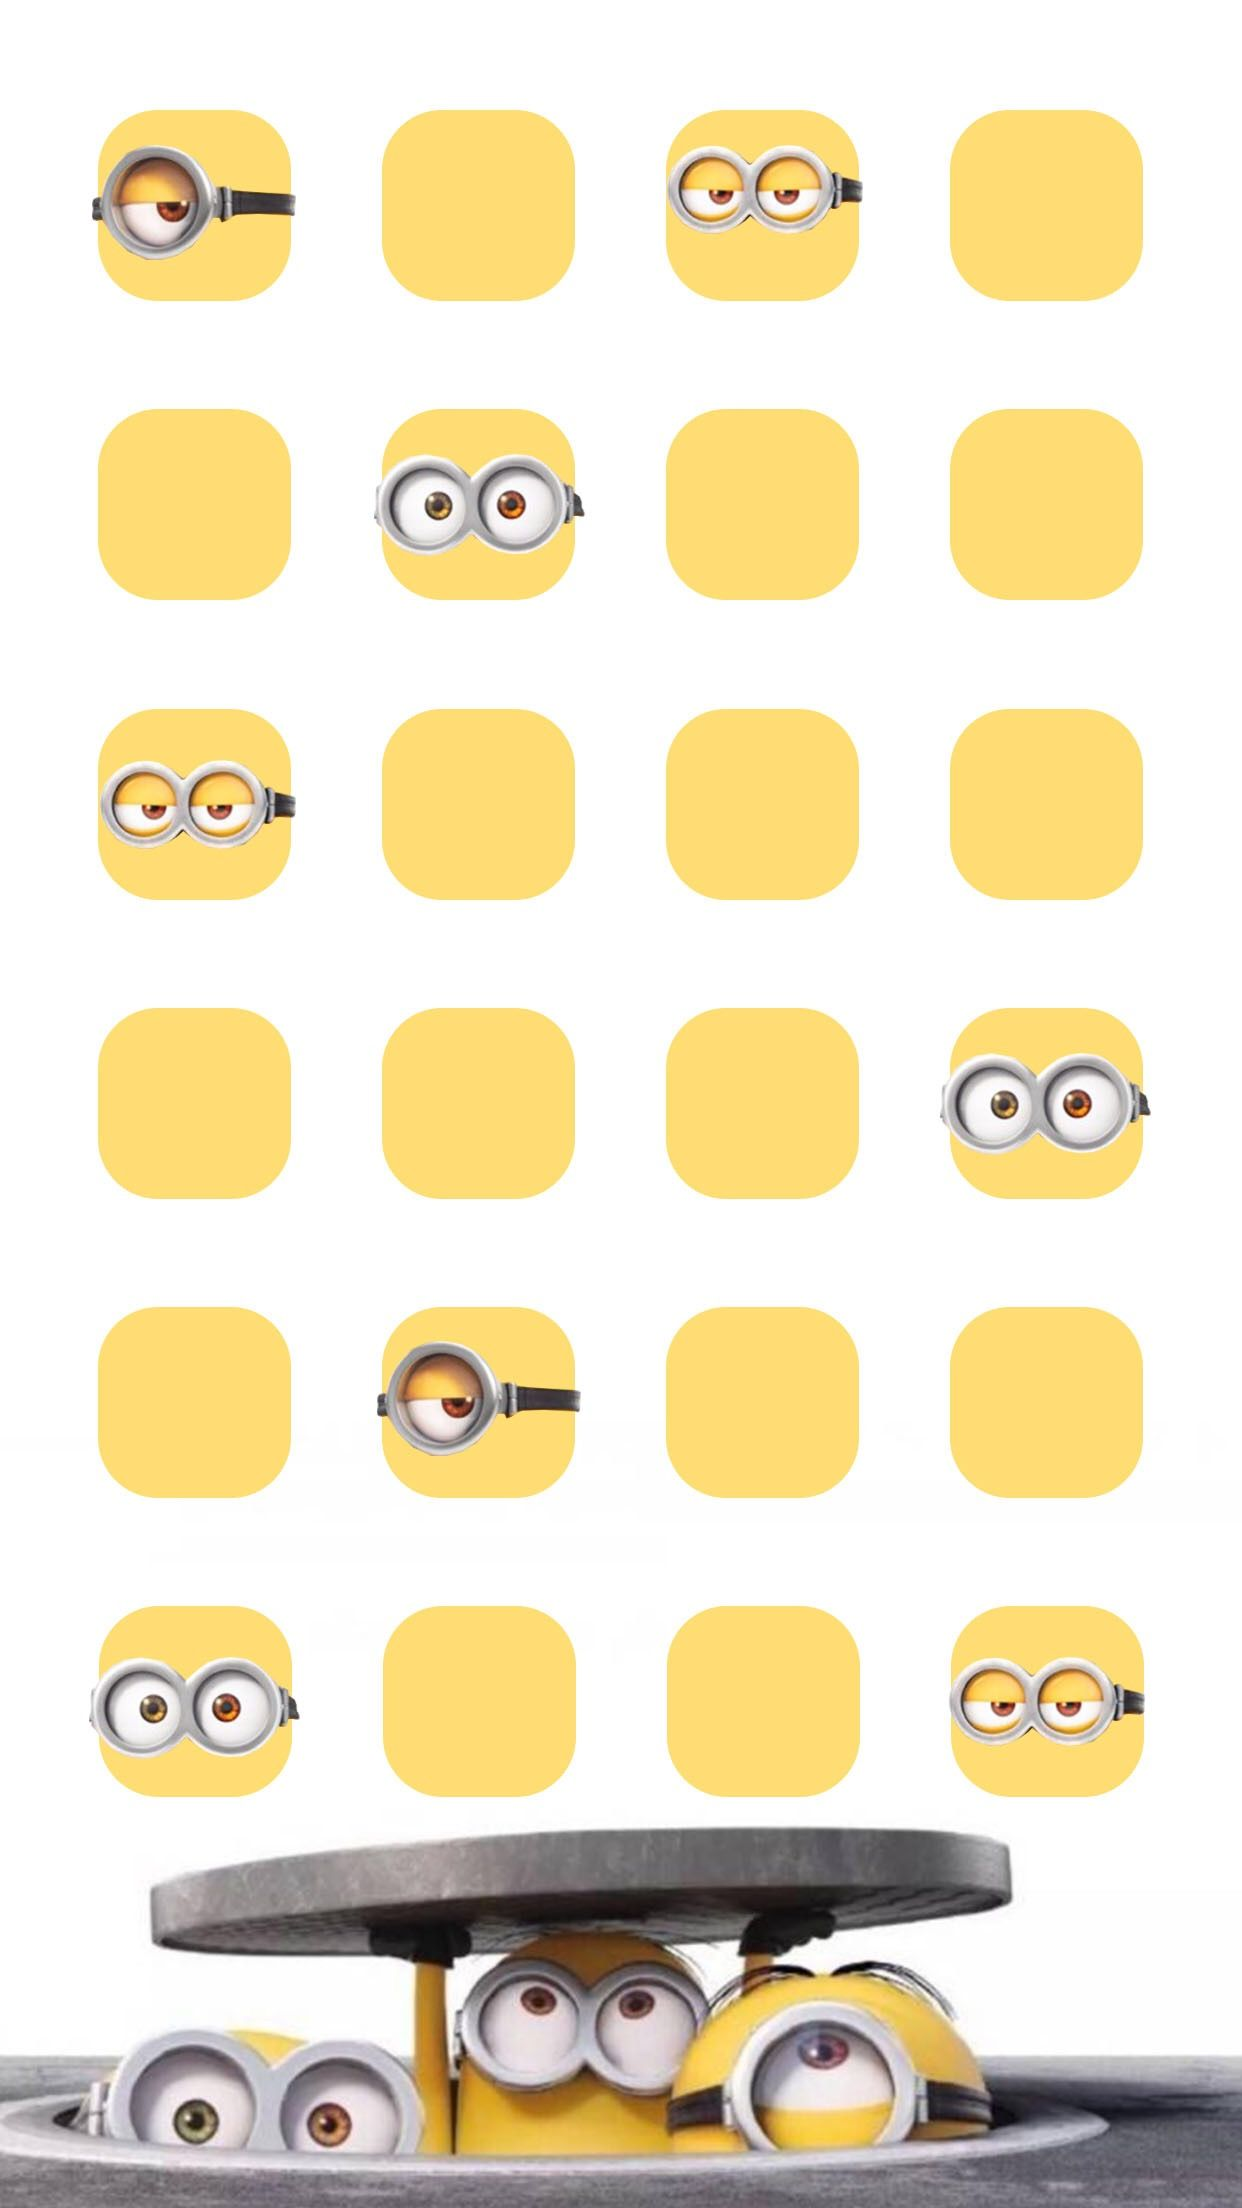 Minions Phone Wallpapers In 2019 Minions Iphone Wallpaper